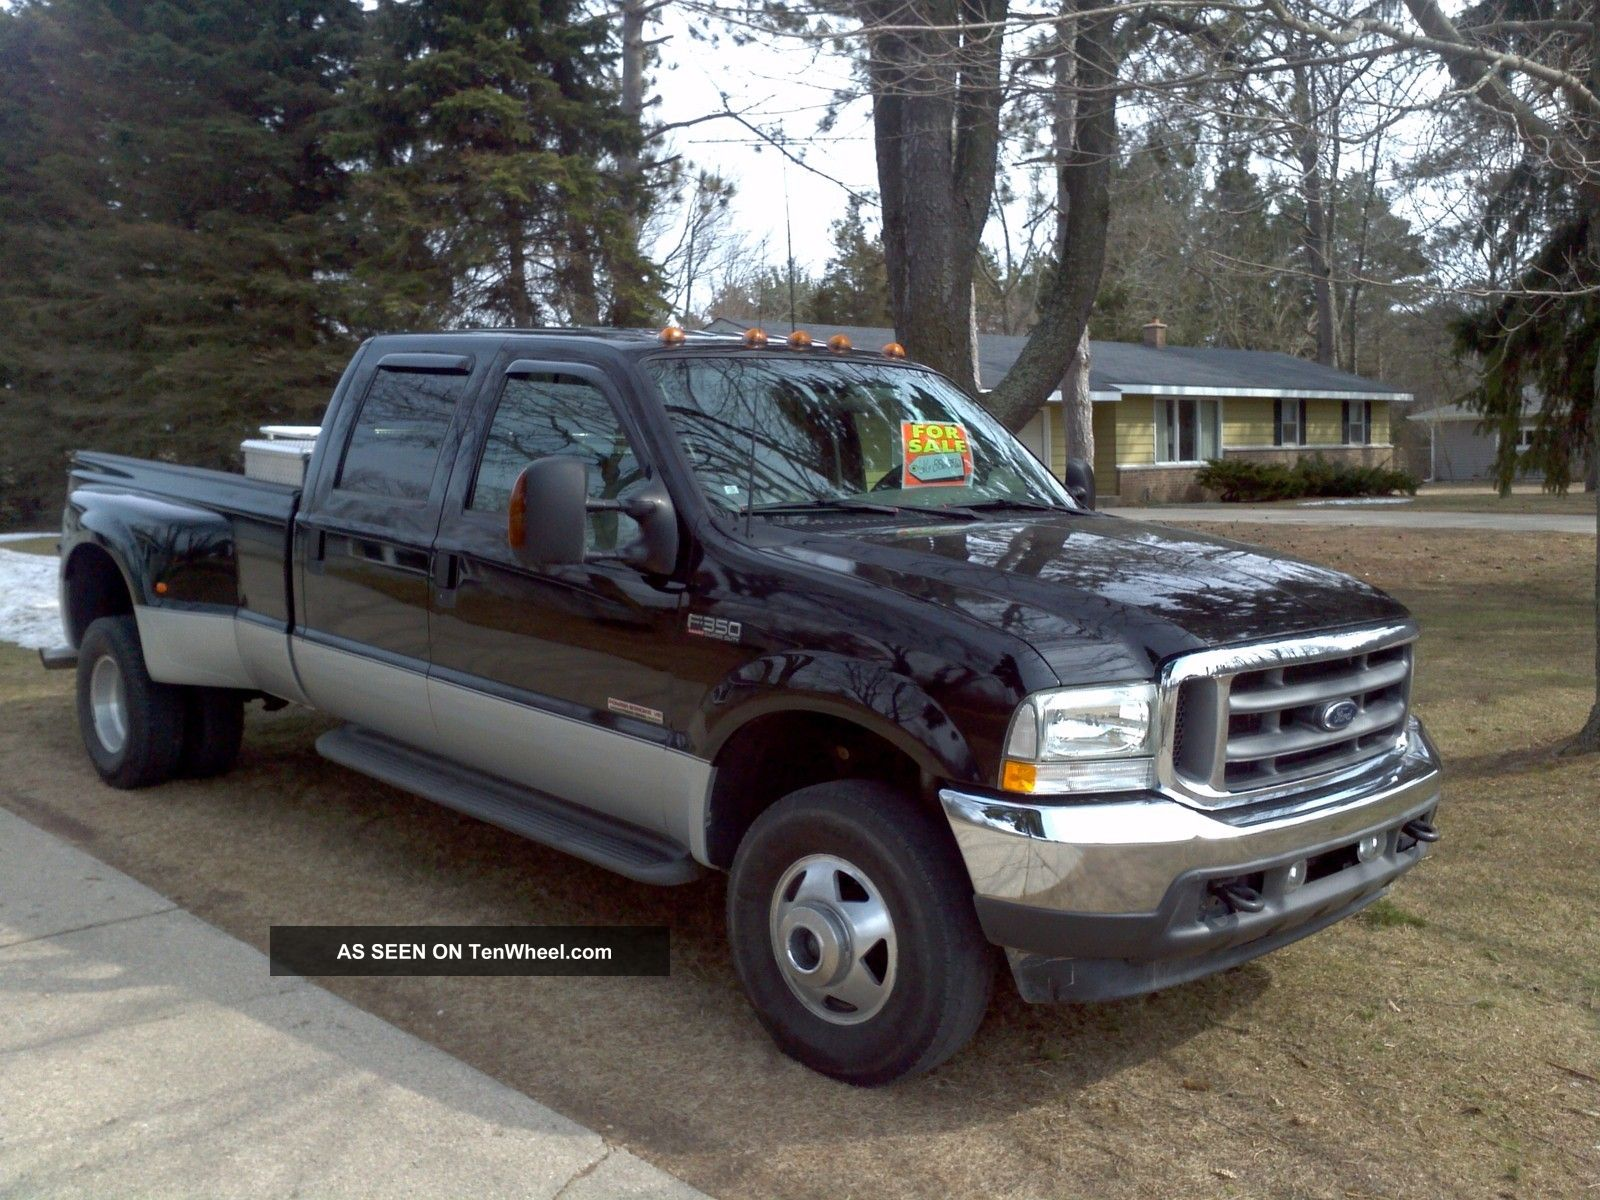 2003 ford f 350 dually powerstroke turbo diesel crew cab lariat loaded 4x4. Black Bedroom Furniture Sets. Home Design Ideas